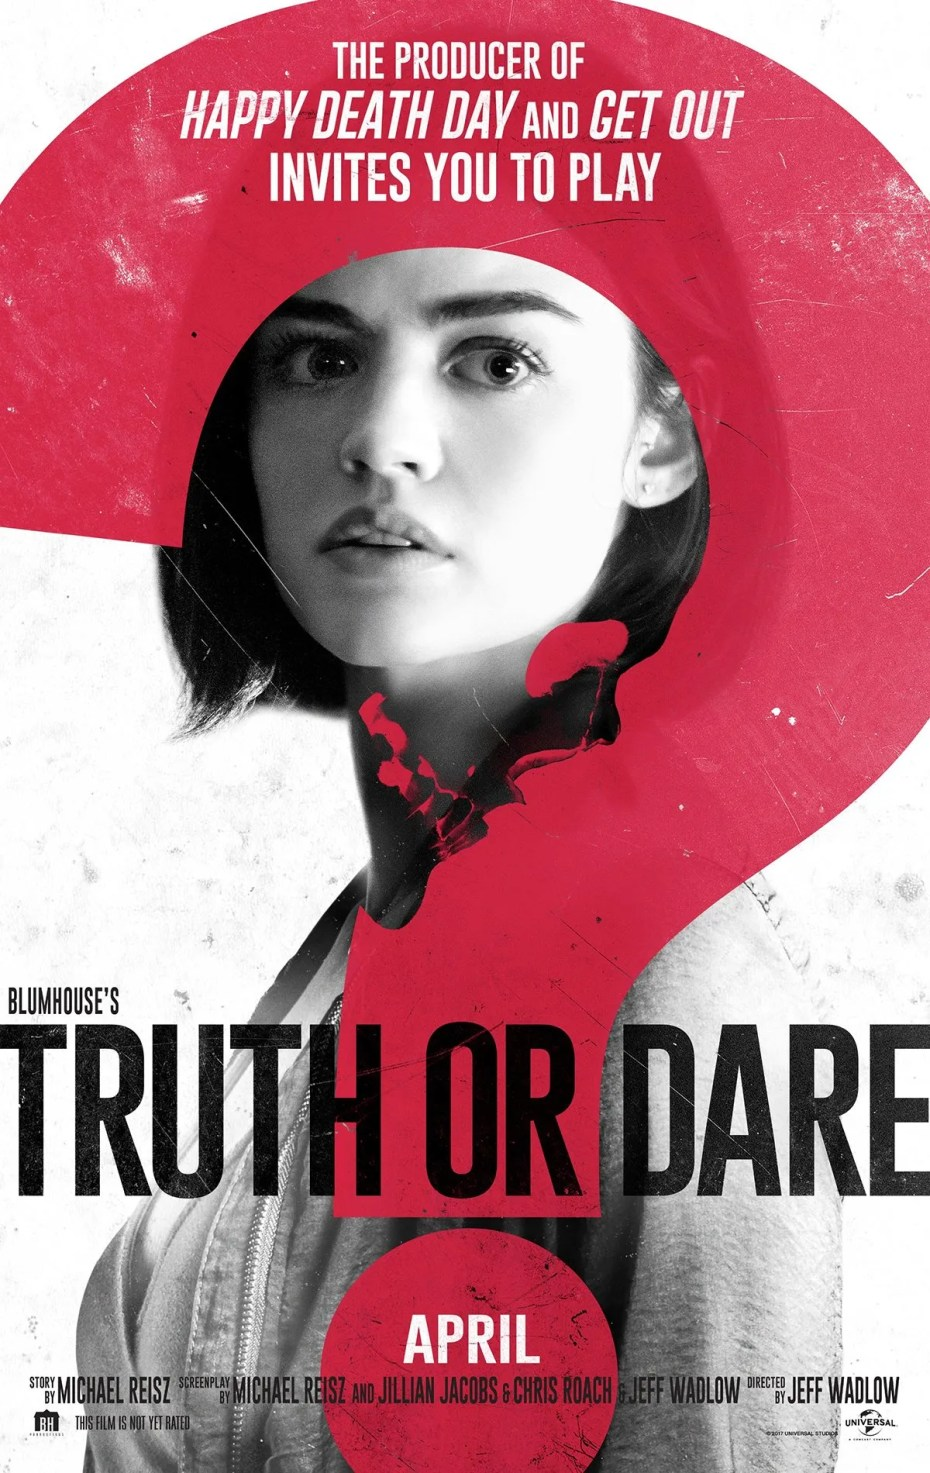 Blumhouse Truth or Dare poster